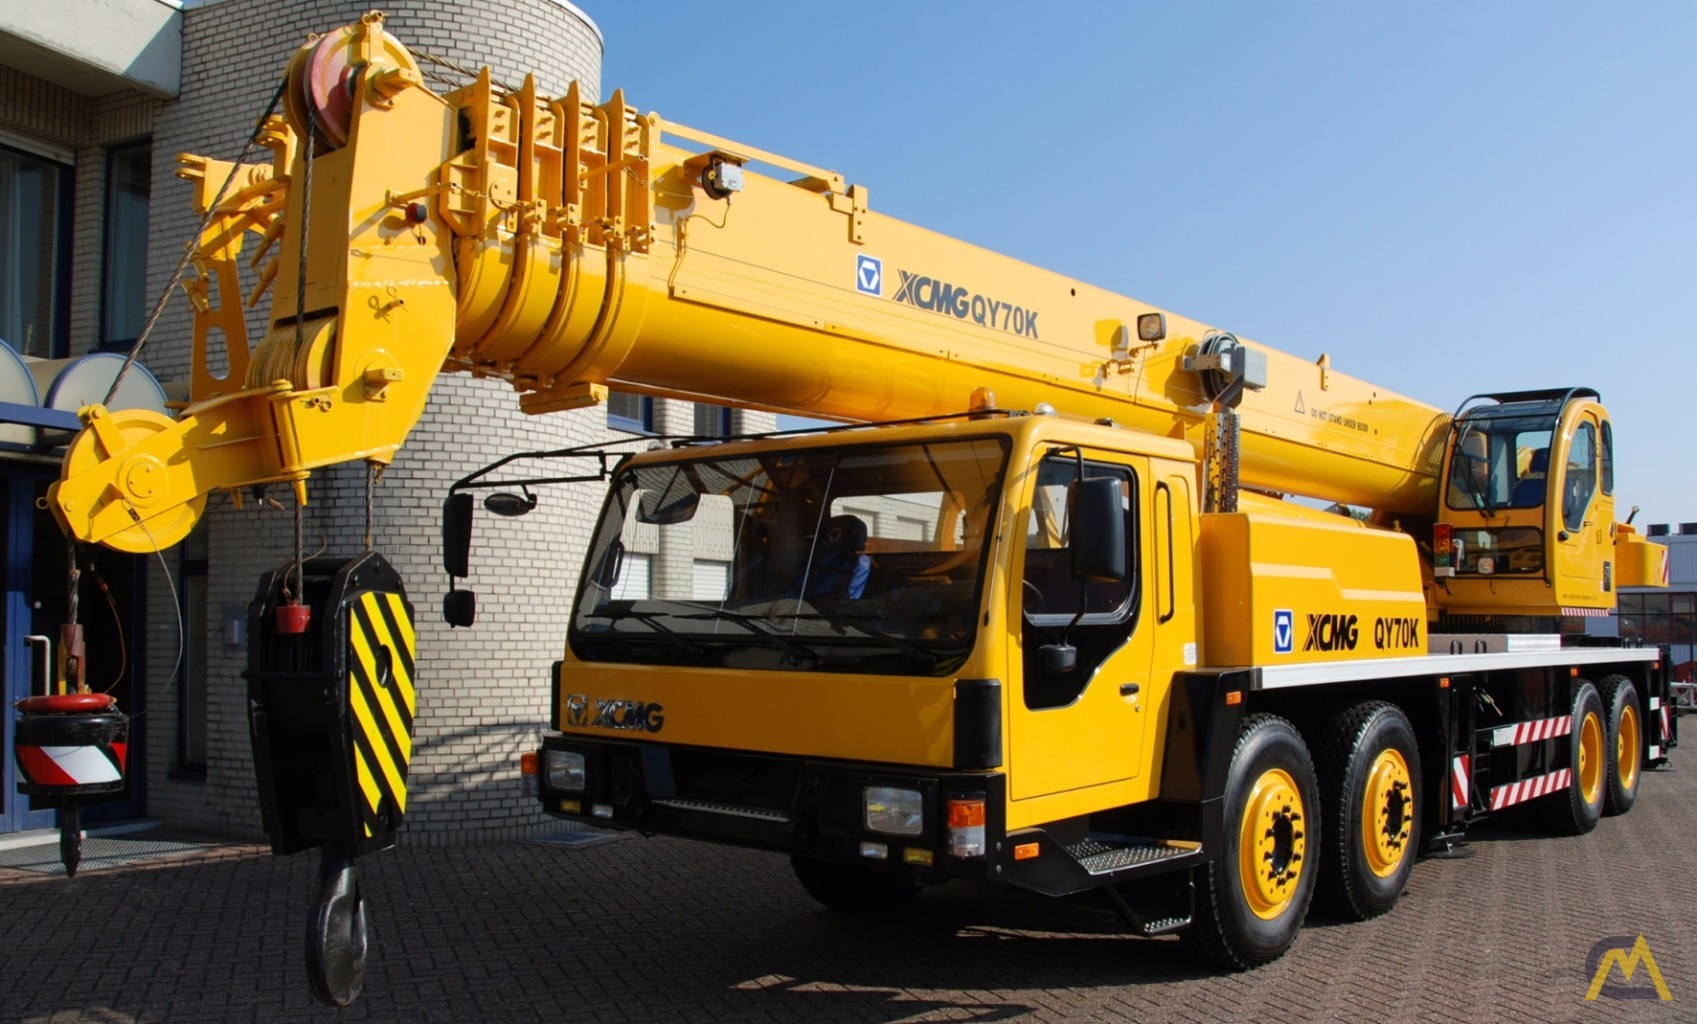 Truck Crane, XCMG used Truck crane 70T QY-70K, XCMG used